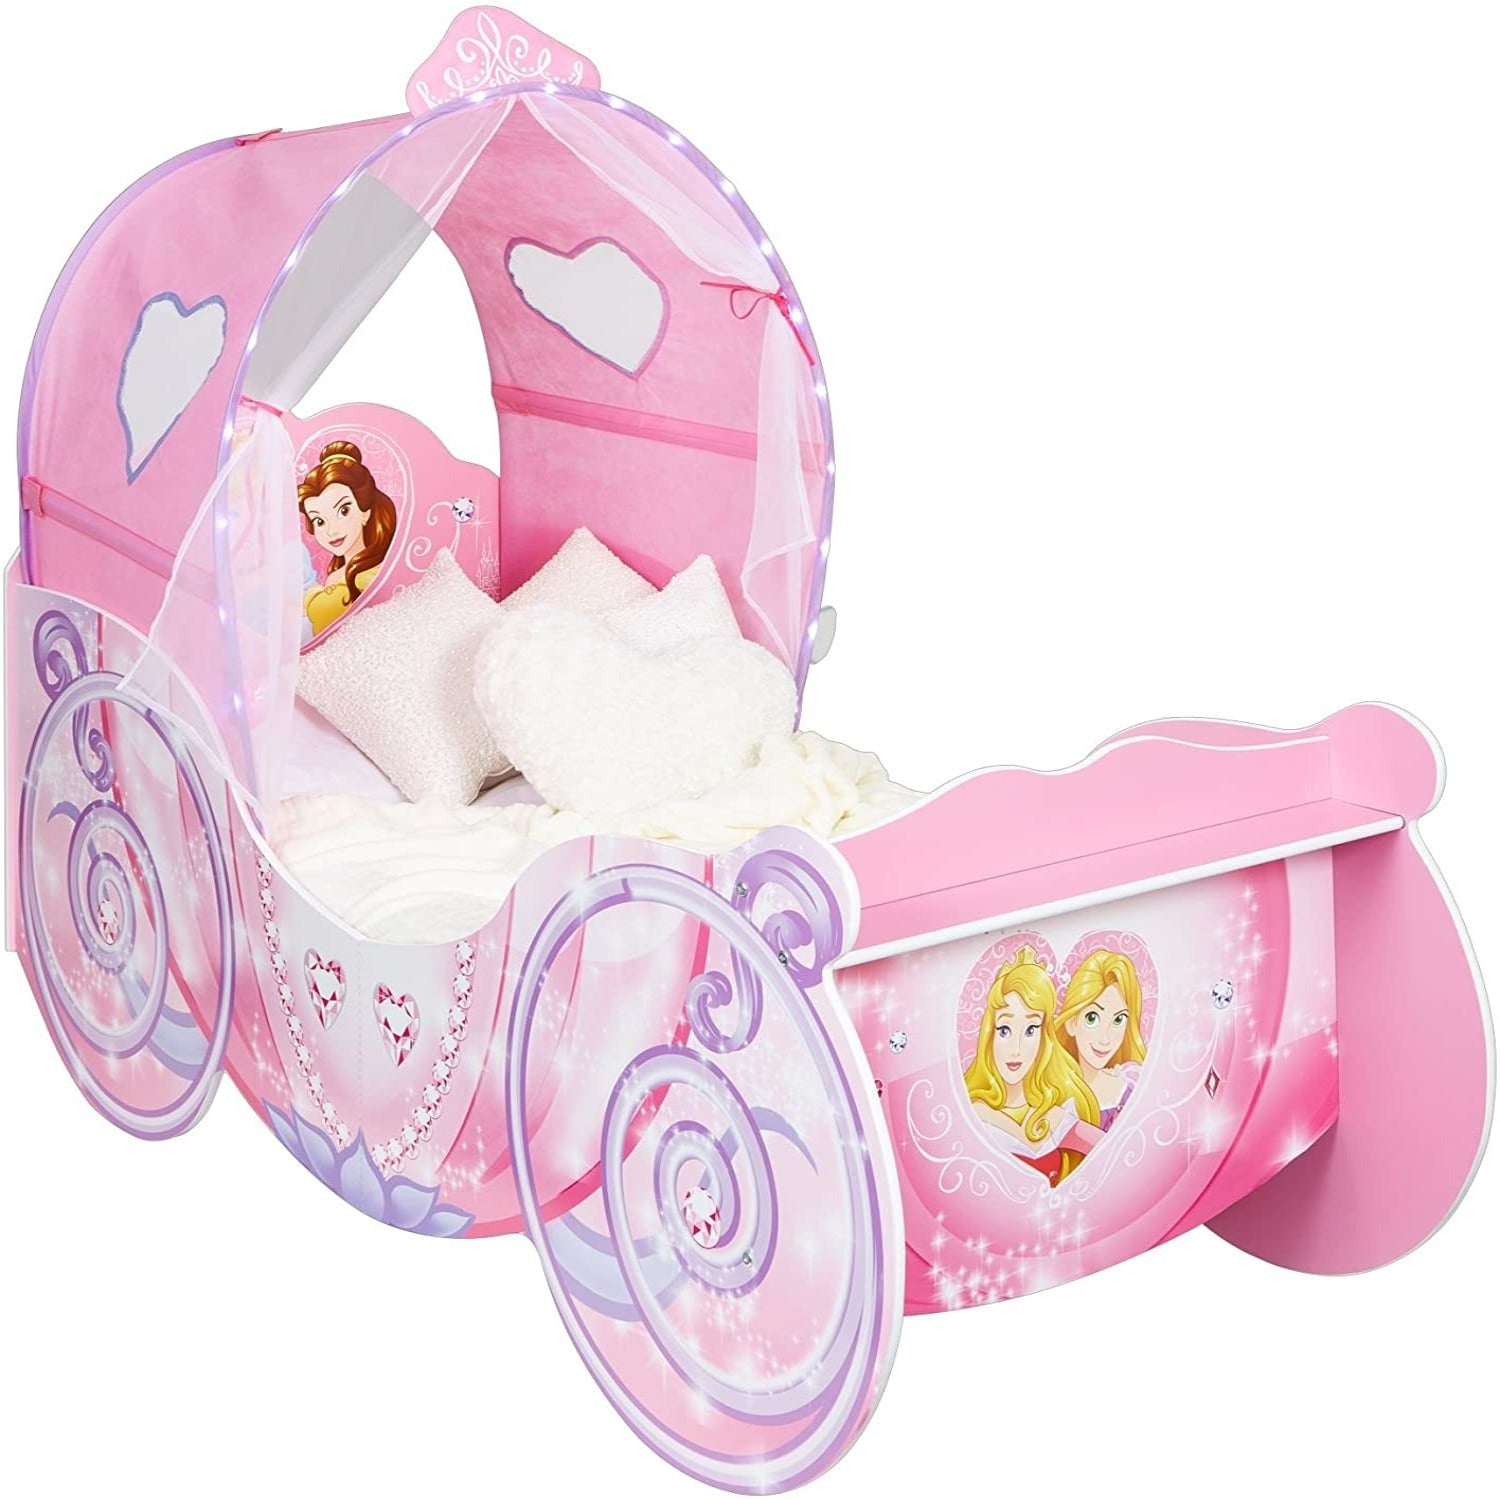 Disney Princess Carriage With Light Up Canopy Toddler Bed Cotandcandy